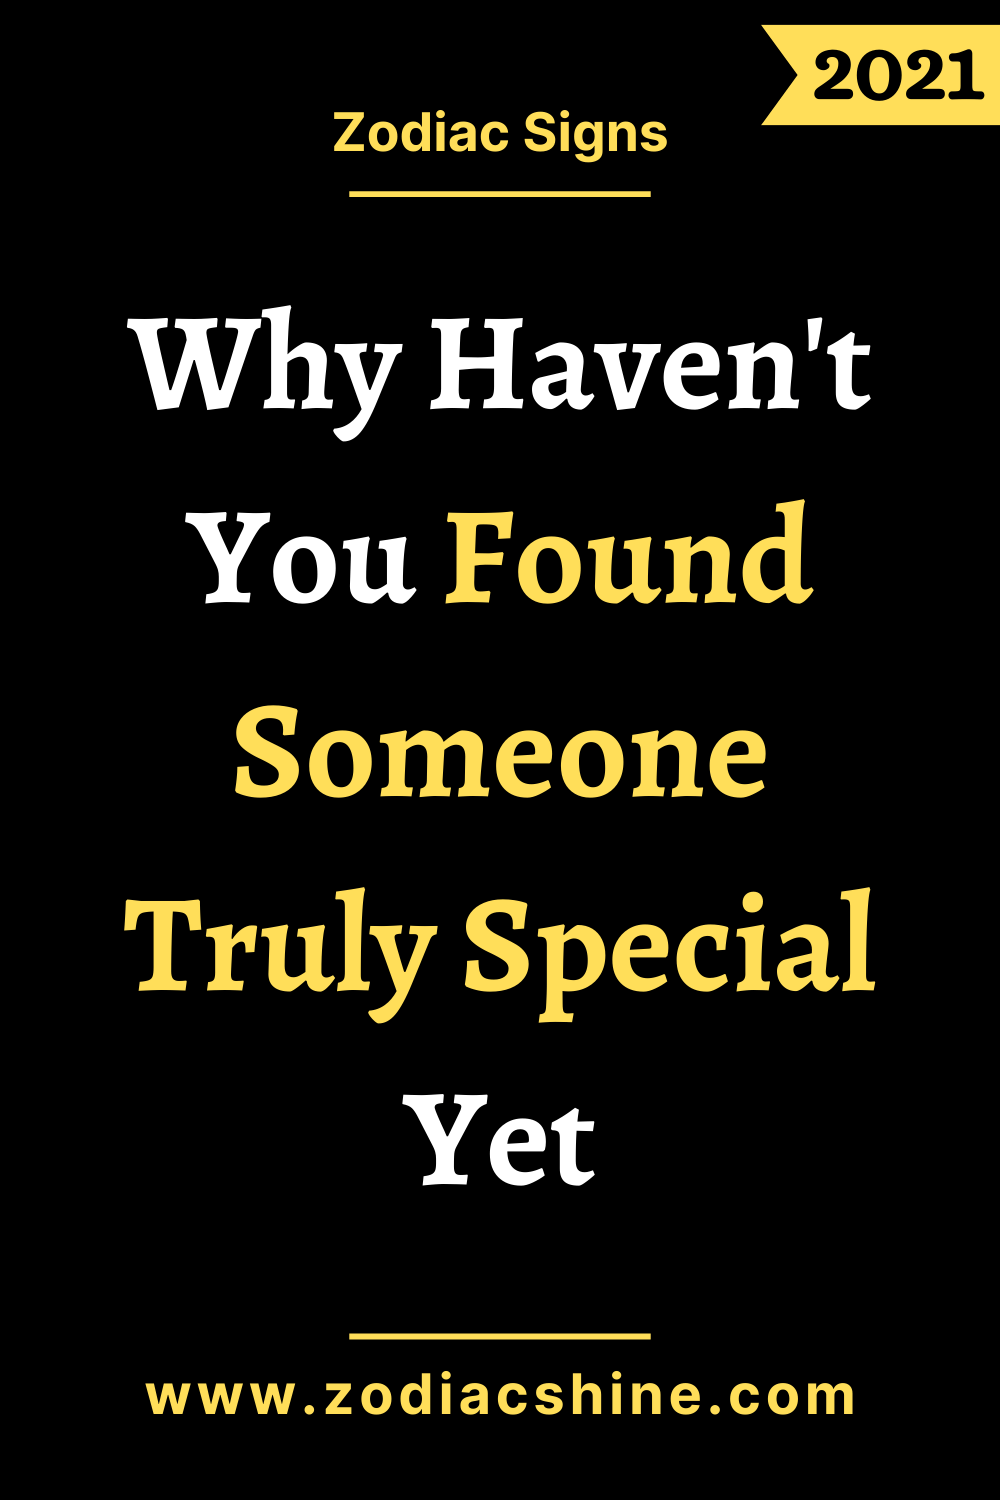 Why Haven't You Found Someone Truly Special Yet